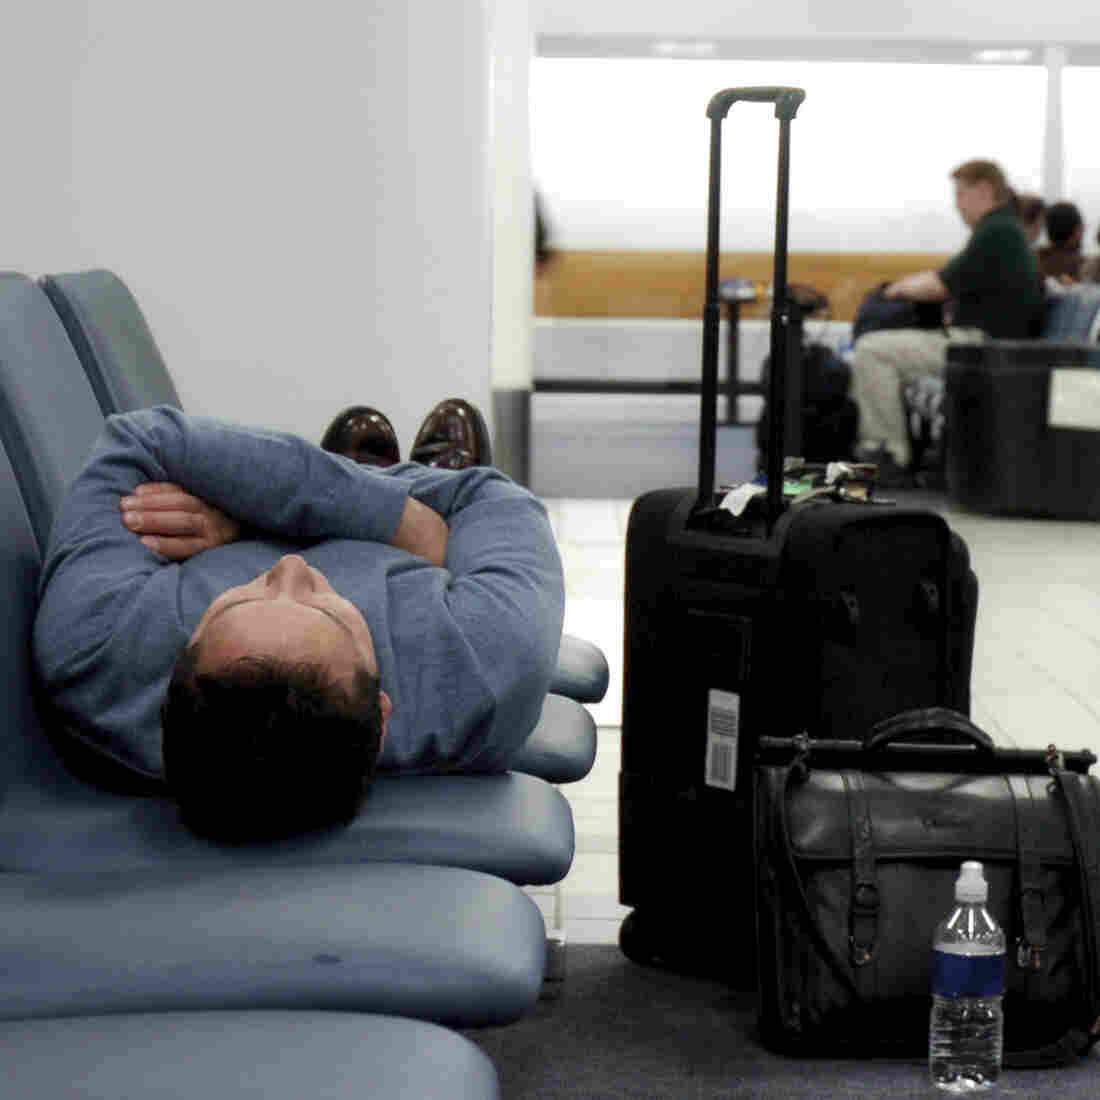 You've been there, and you know it doesn't feel good. But an app based on the science of circadian rhythms could help reduce the suffering of jet lag.